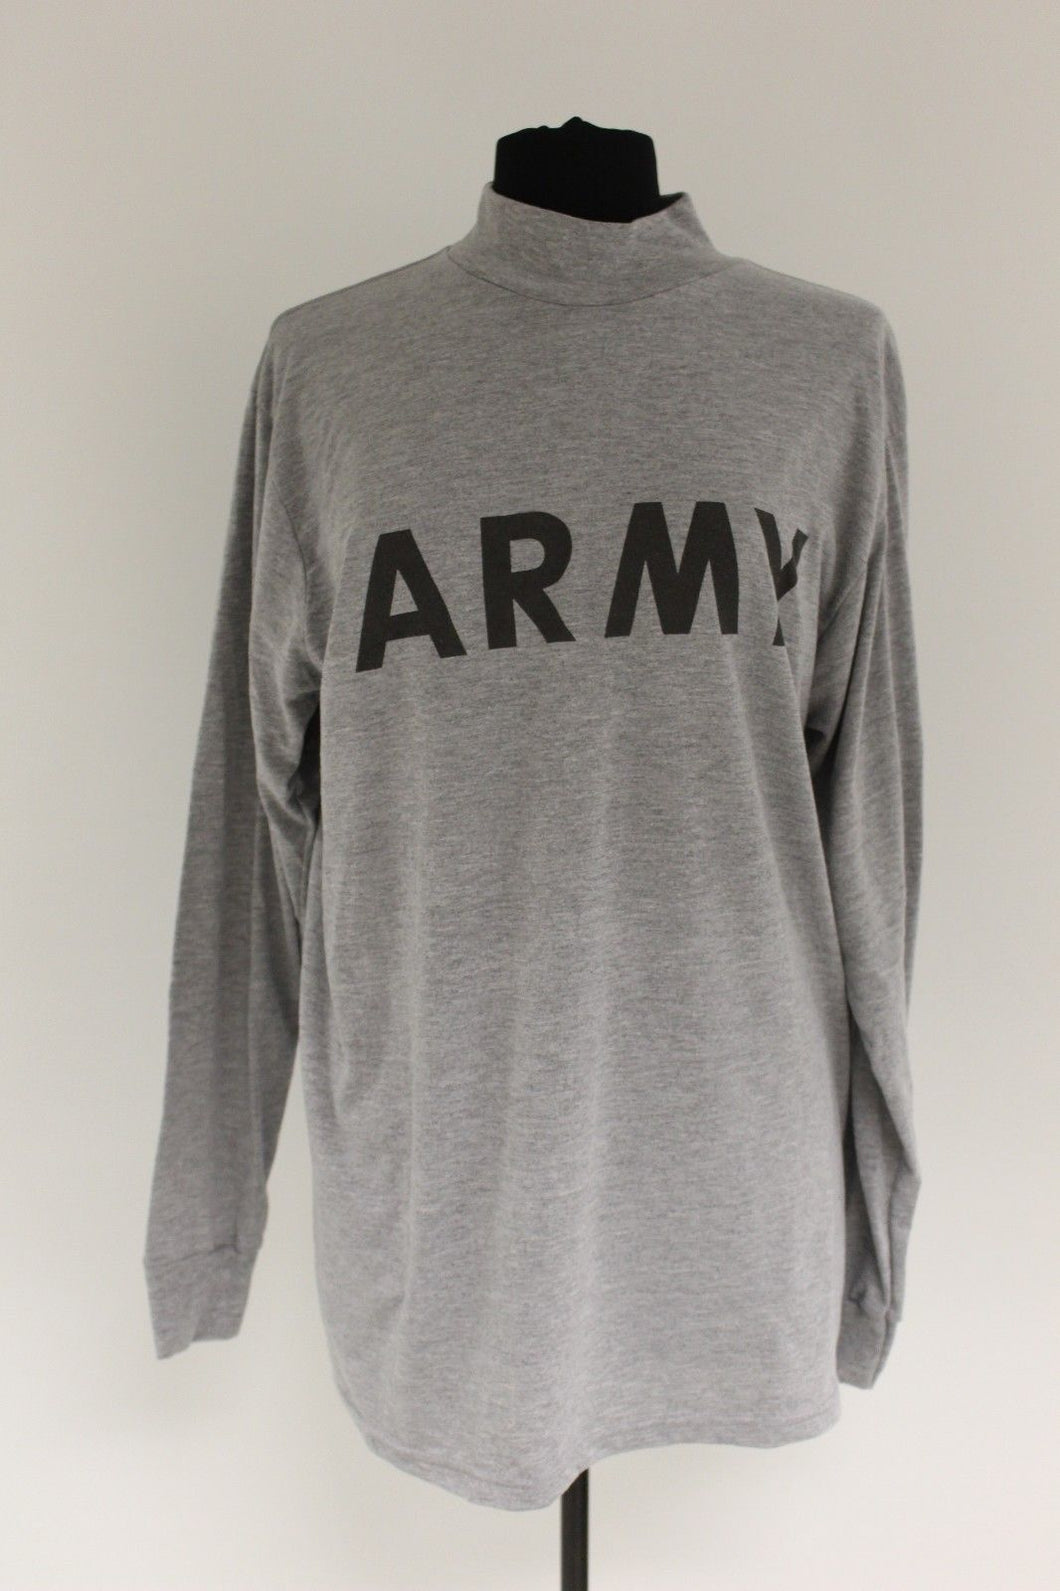 US Military Army Long Sleeve IFPU PT T-Shirt, 8415-01-465-7363, Medium